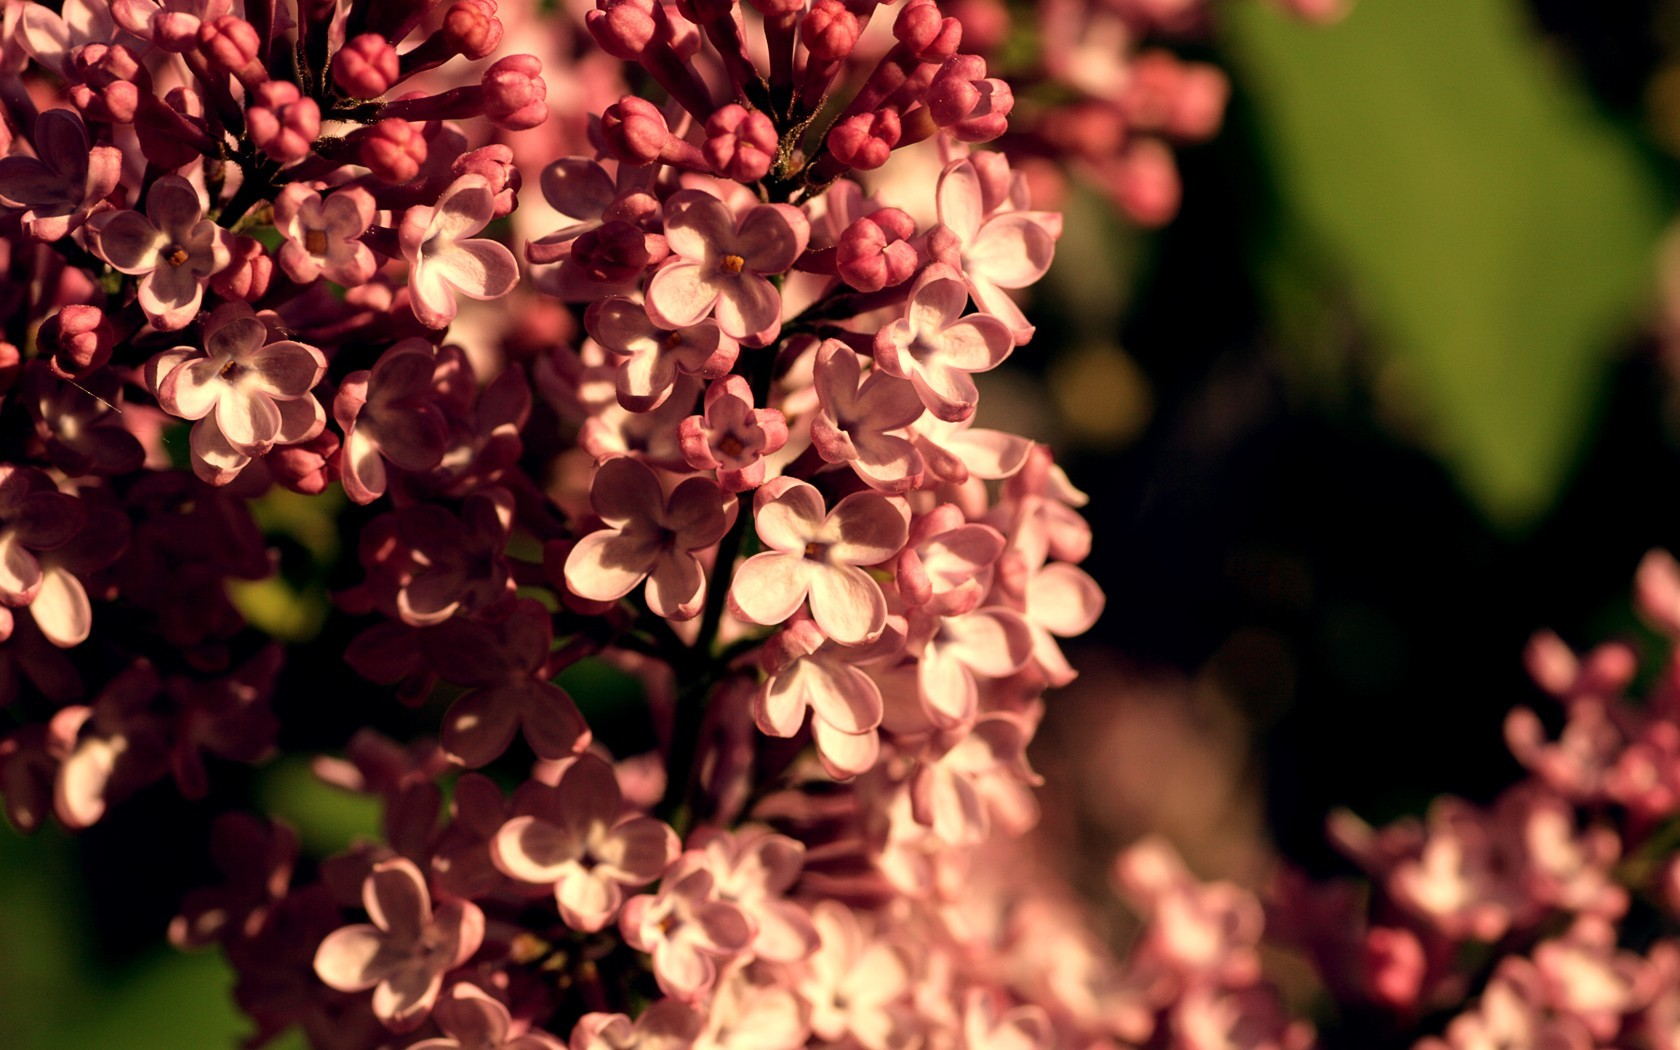 nature Flowers blossoms lilac HD Wallpaper